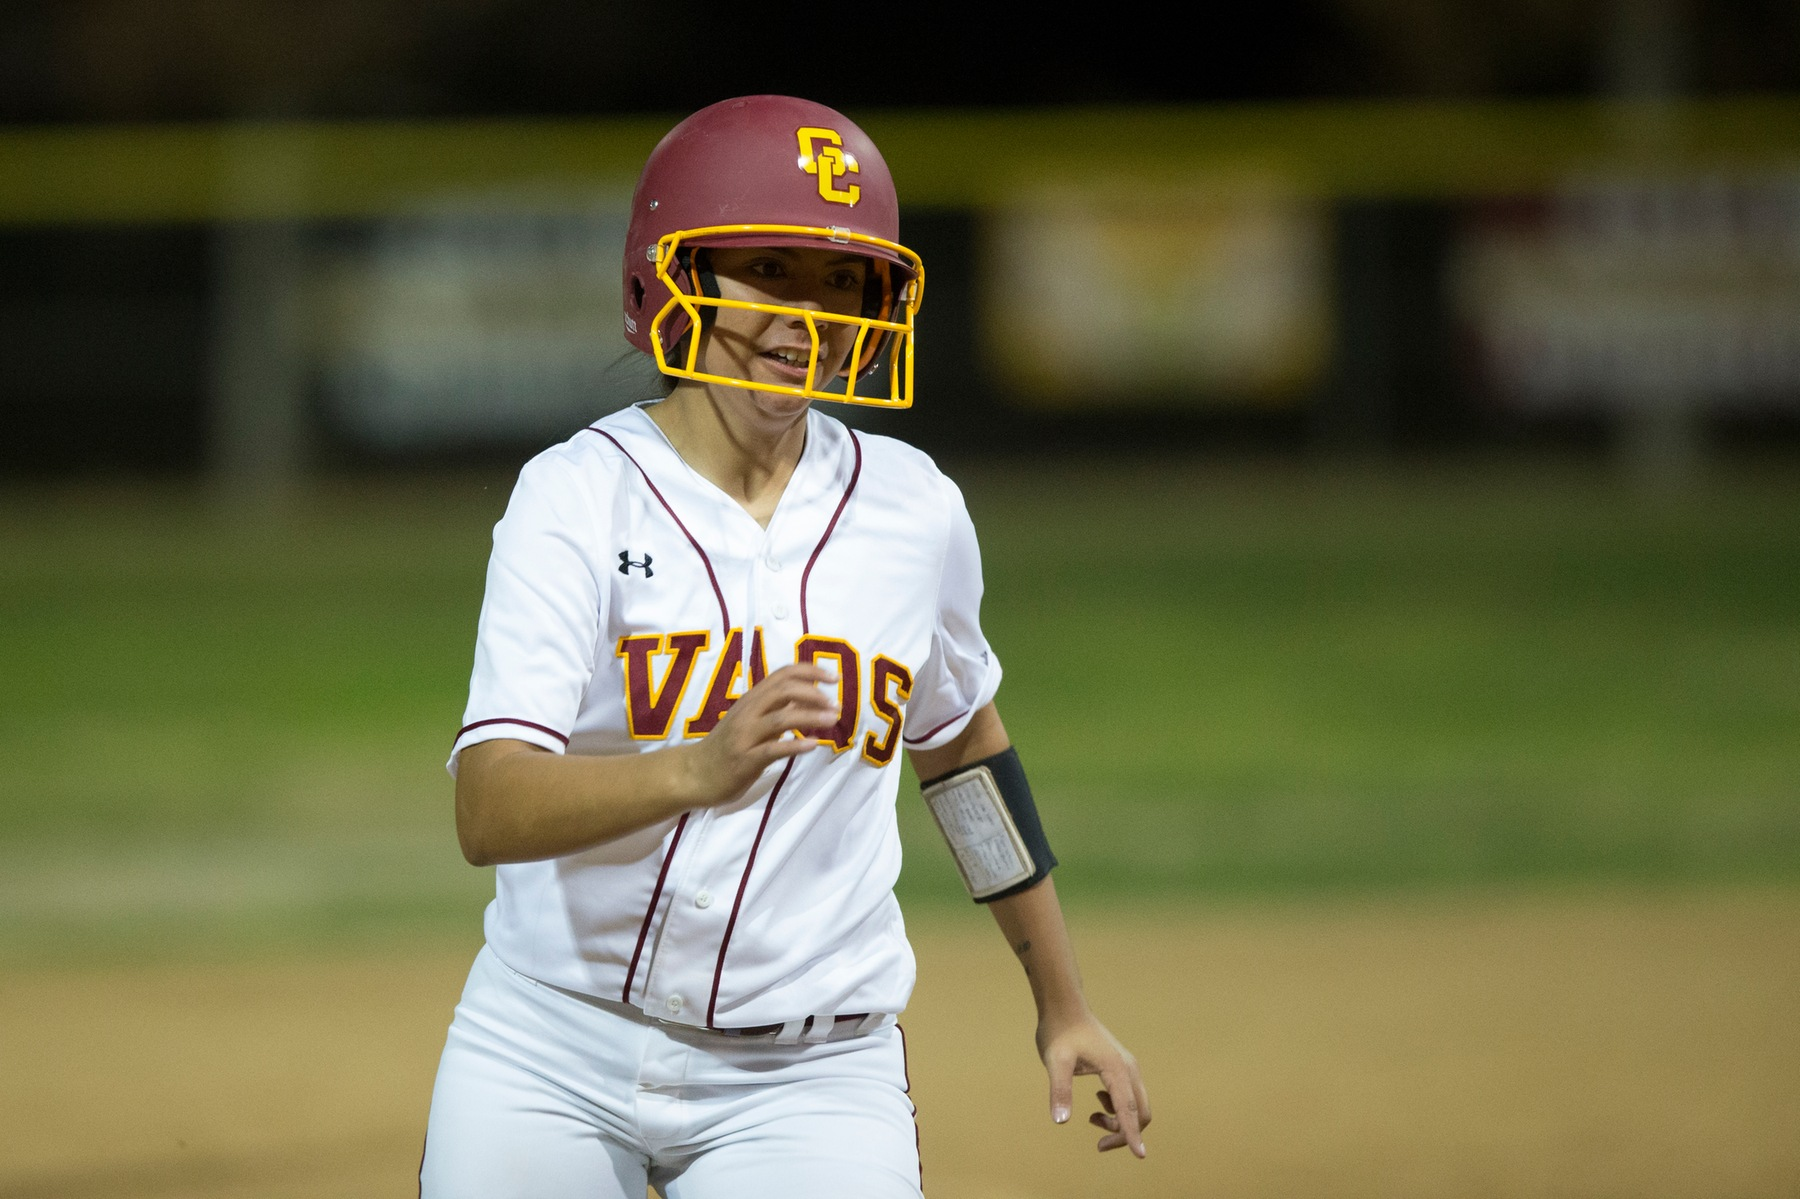 GCC holds on to beat Barstow 10-9; Lilia Montenegro has three hits